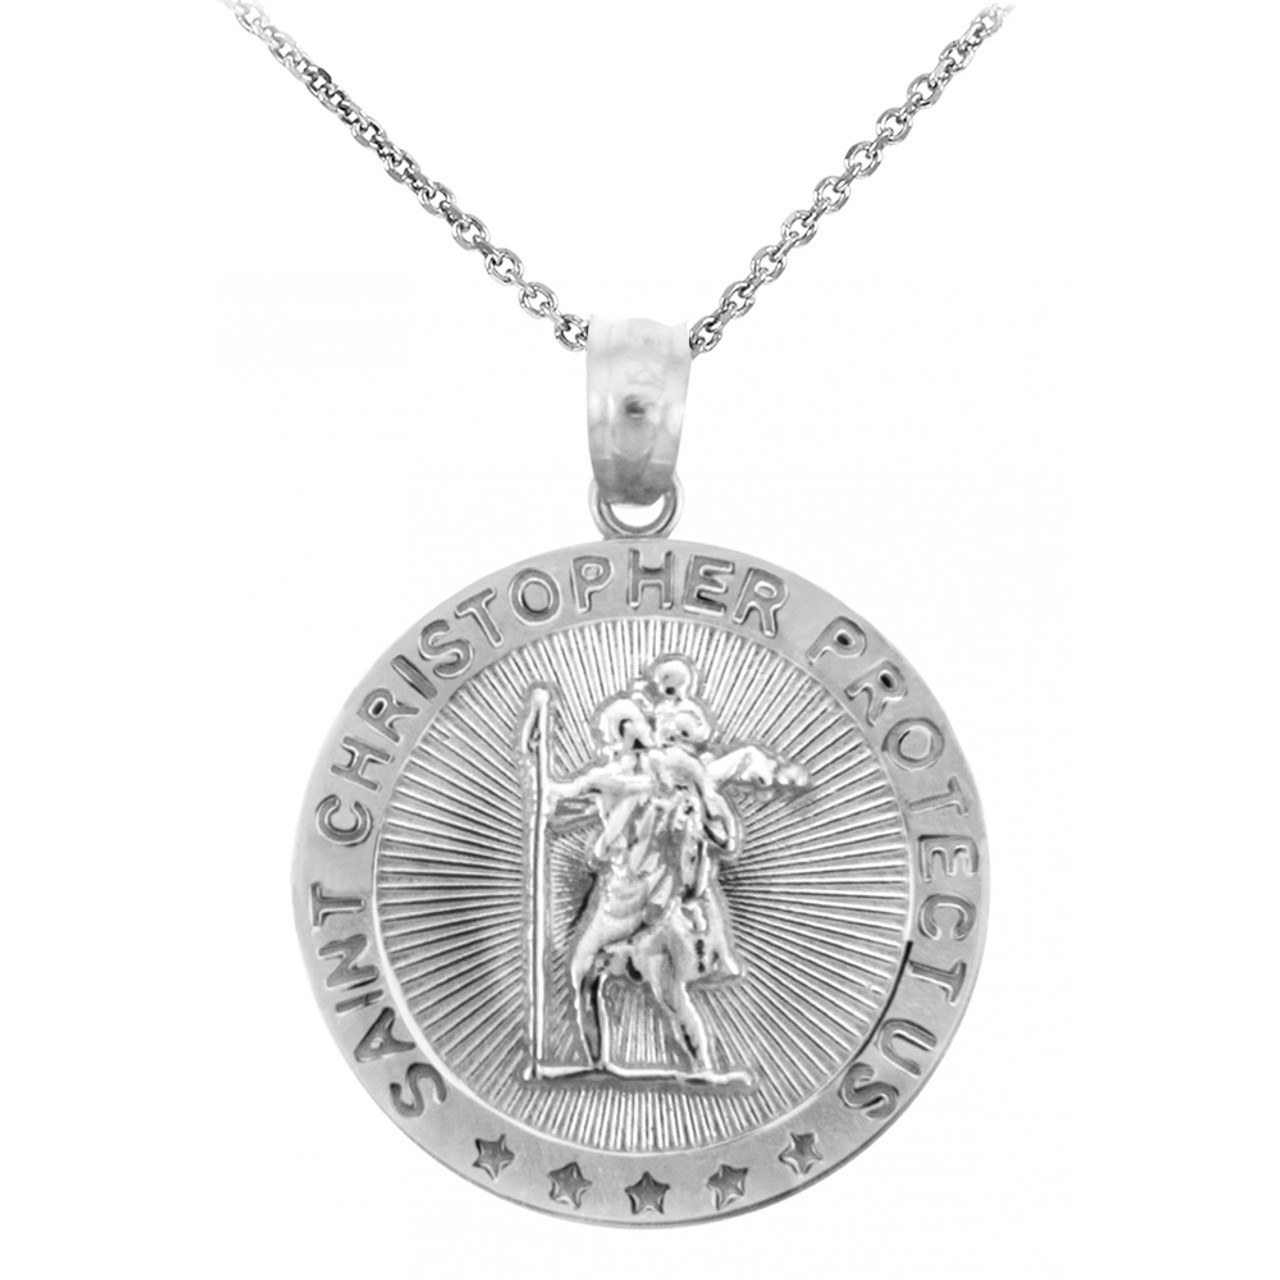 Religious pendants the saint christopher protect us round 925 st christopher sterling silver coin pendant necklace aloadofball Choice Image